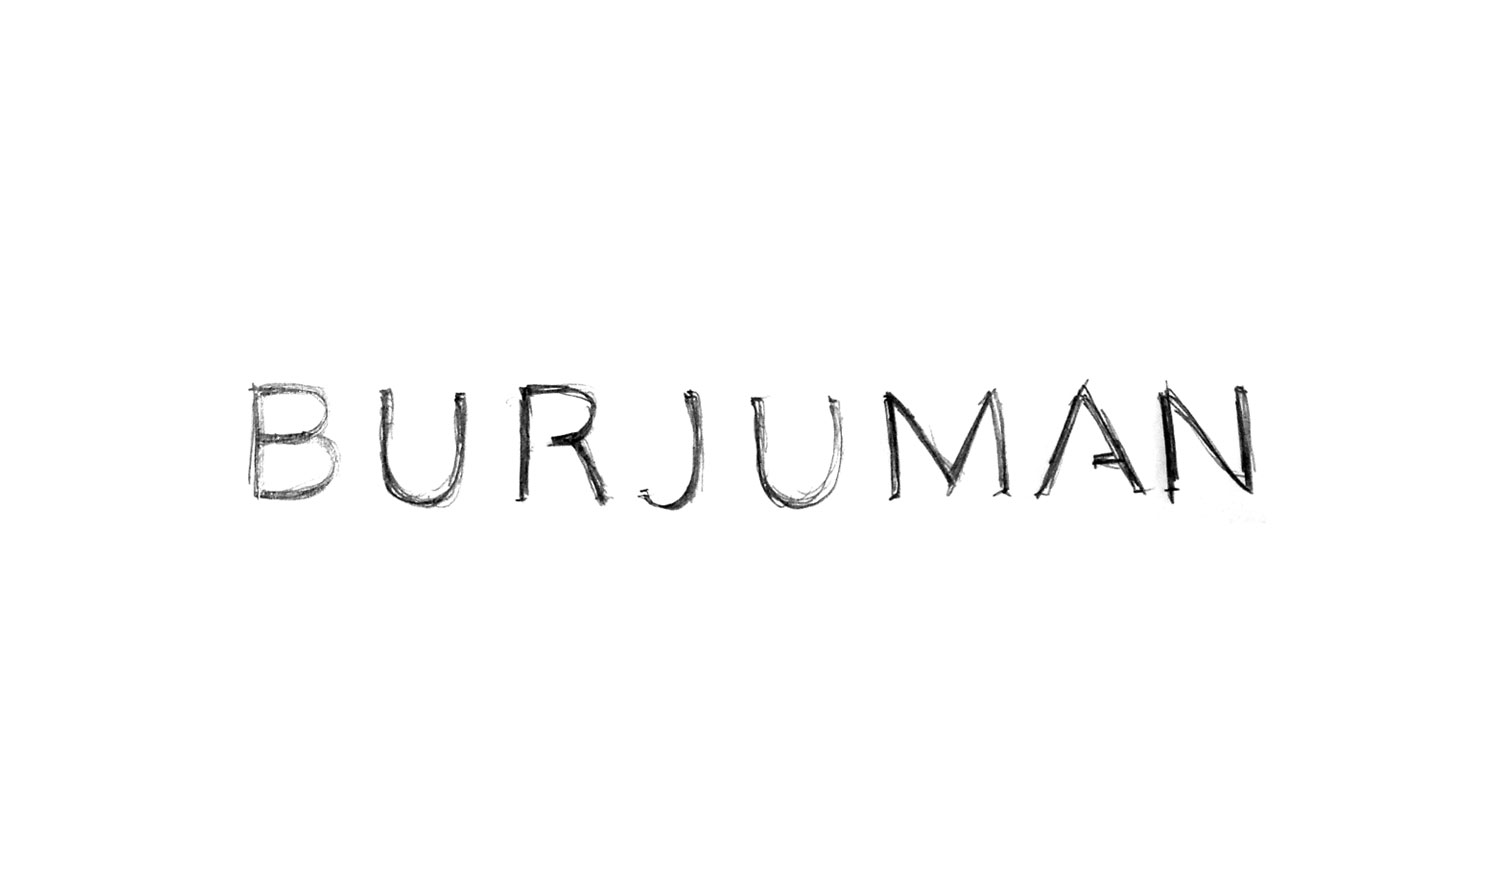 BurJuman-Evolution-of-Logos-12.jpg